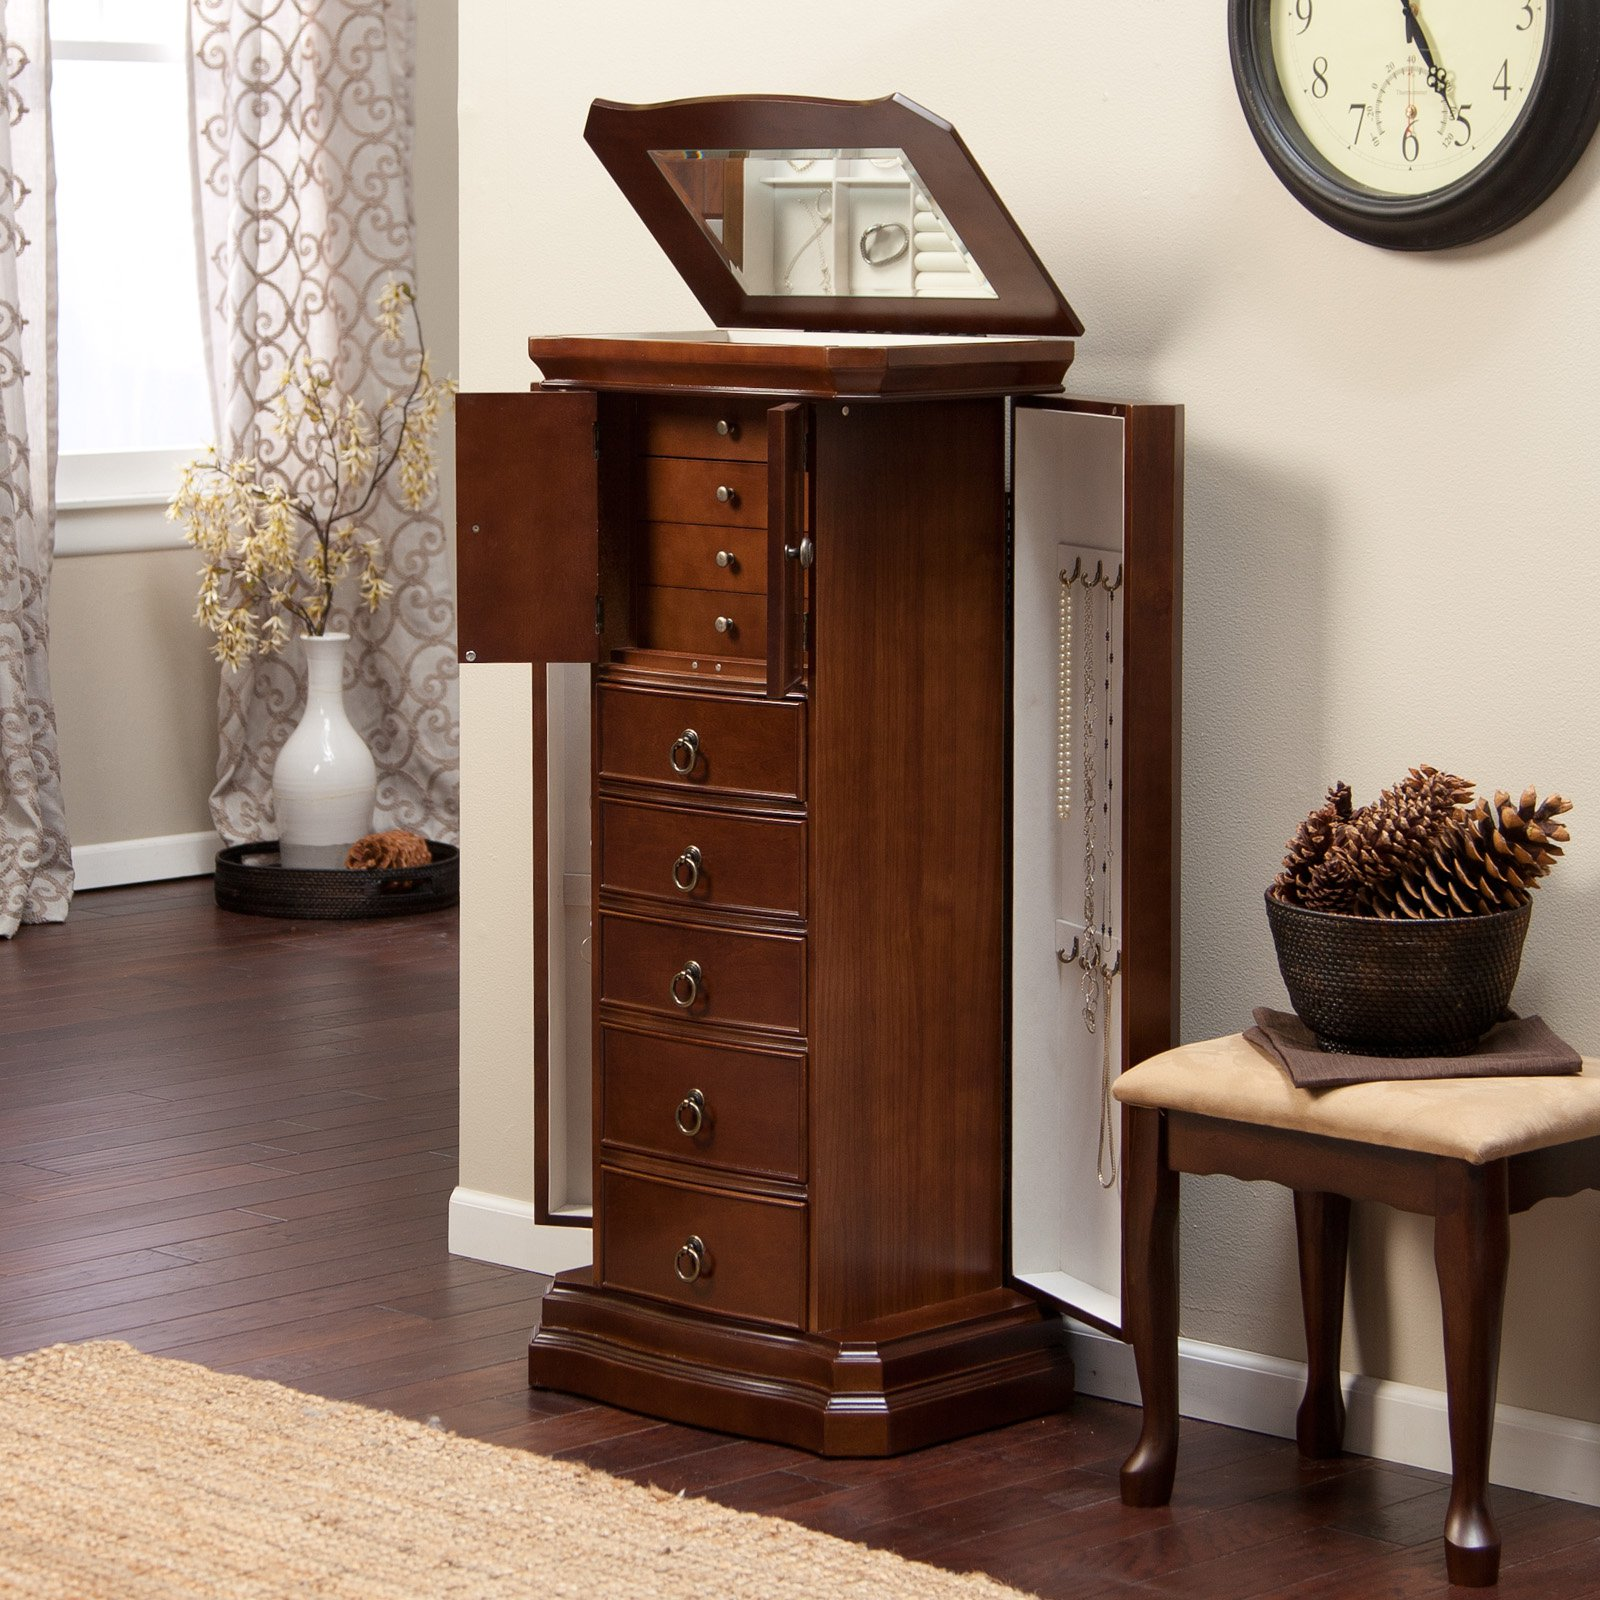 Traditional cherry floor standing jewelry armoire